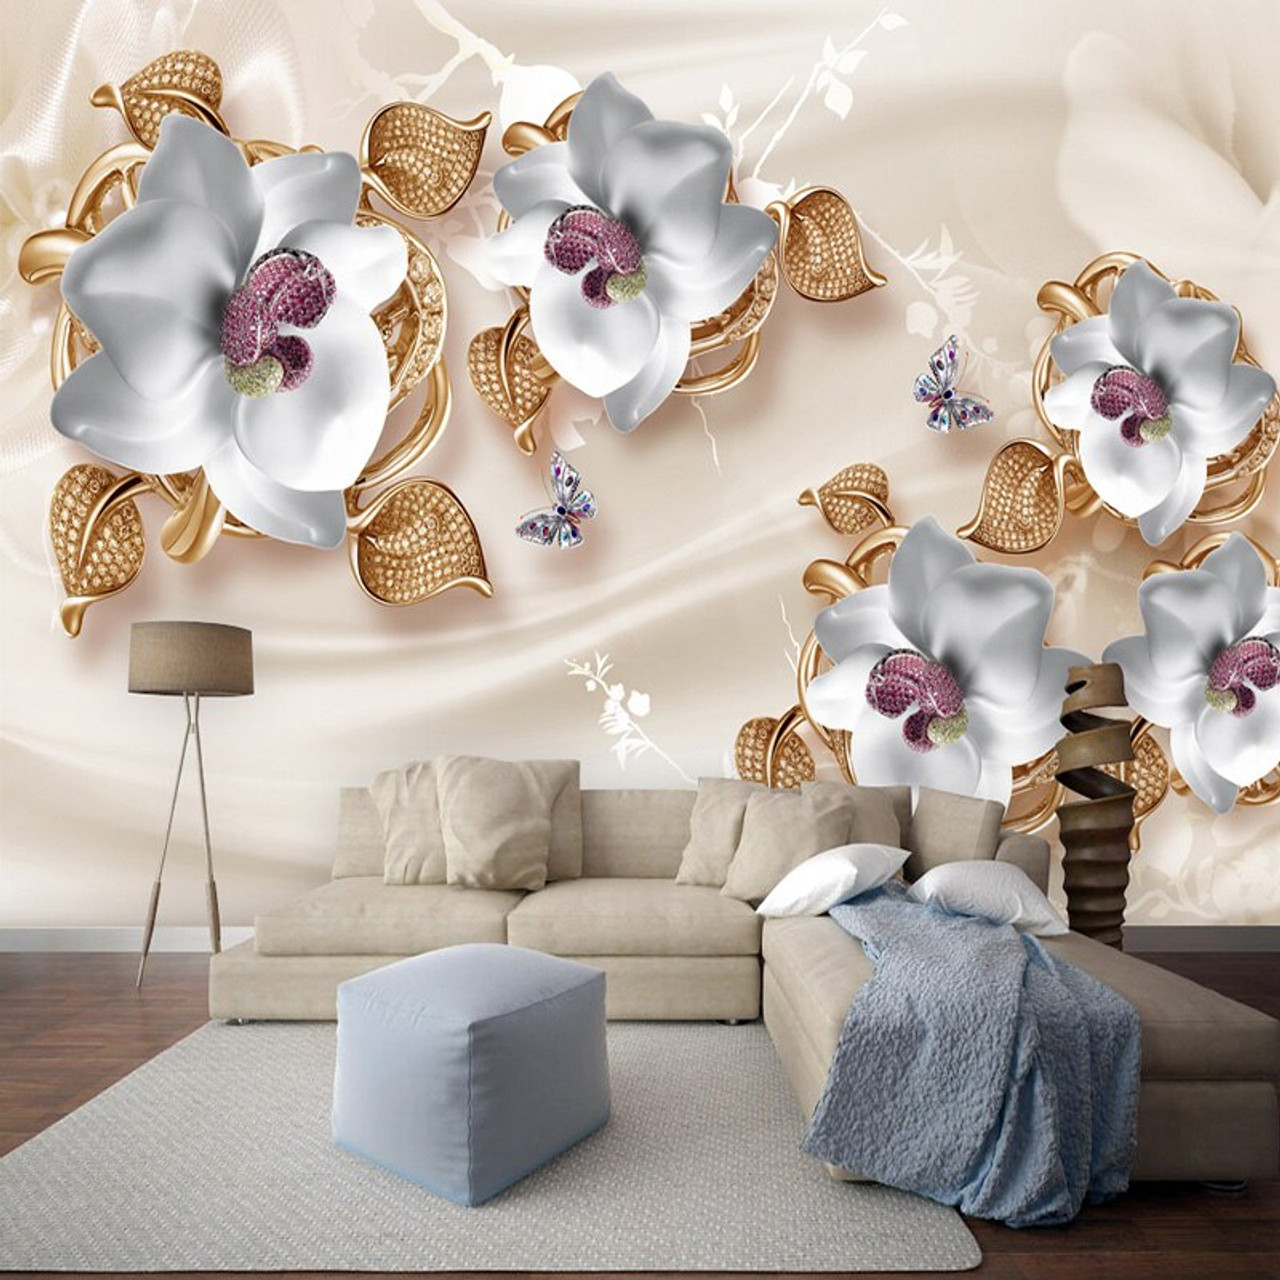 Custom Mural Wallpaper 3d Stereo Flowers Jewelry Photo Wall Painting Living Room Bedroom Luxury Home Decor Wall Paper For Walls Onshopdeals Com